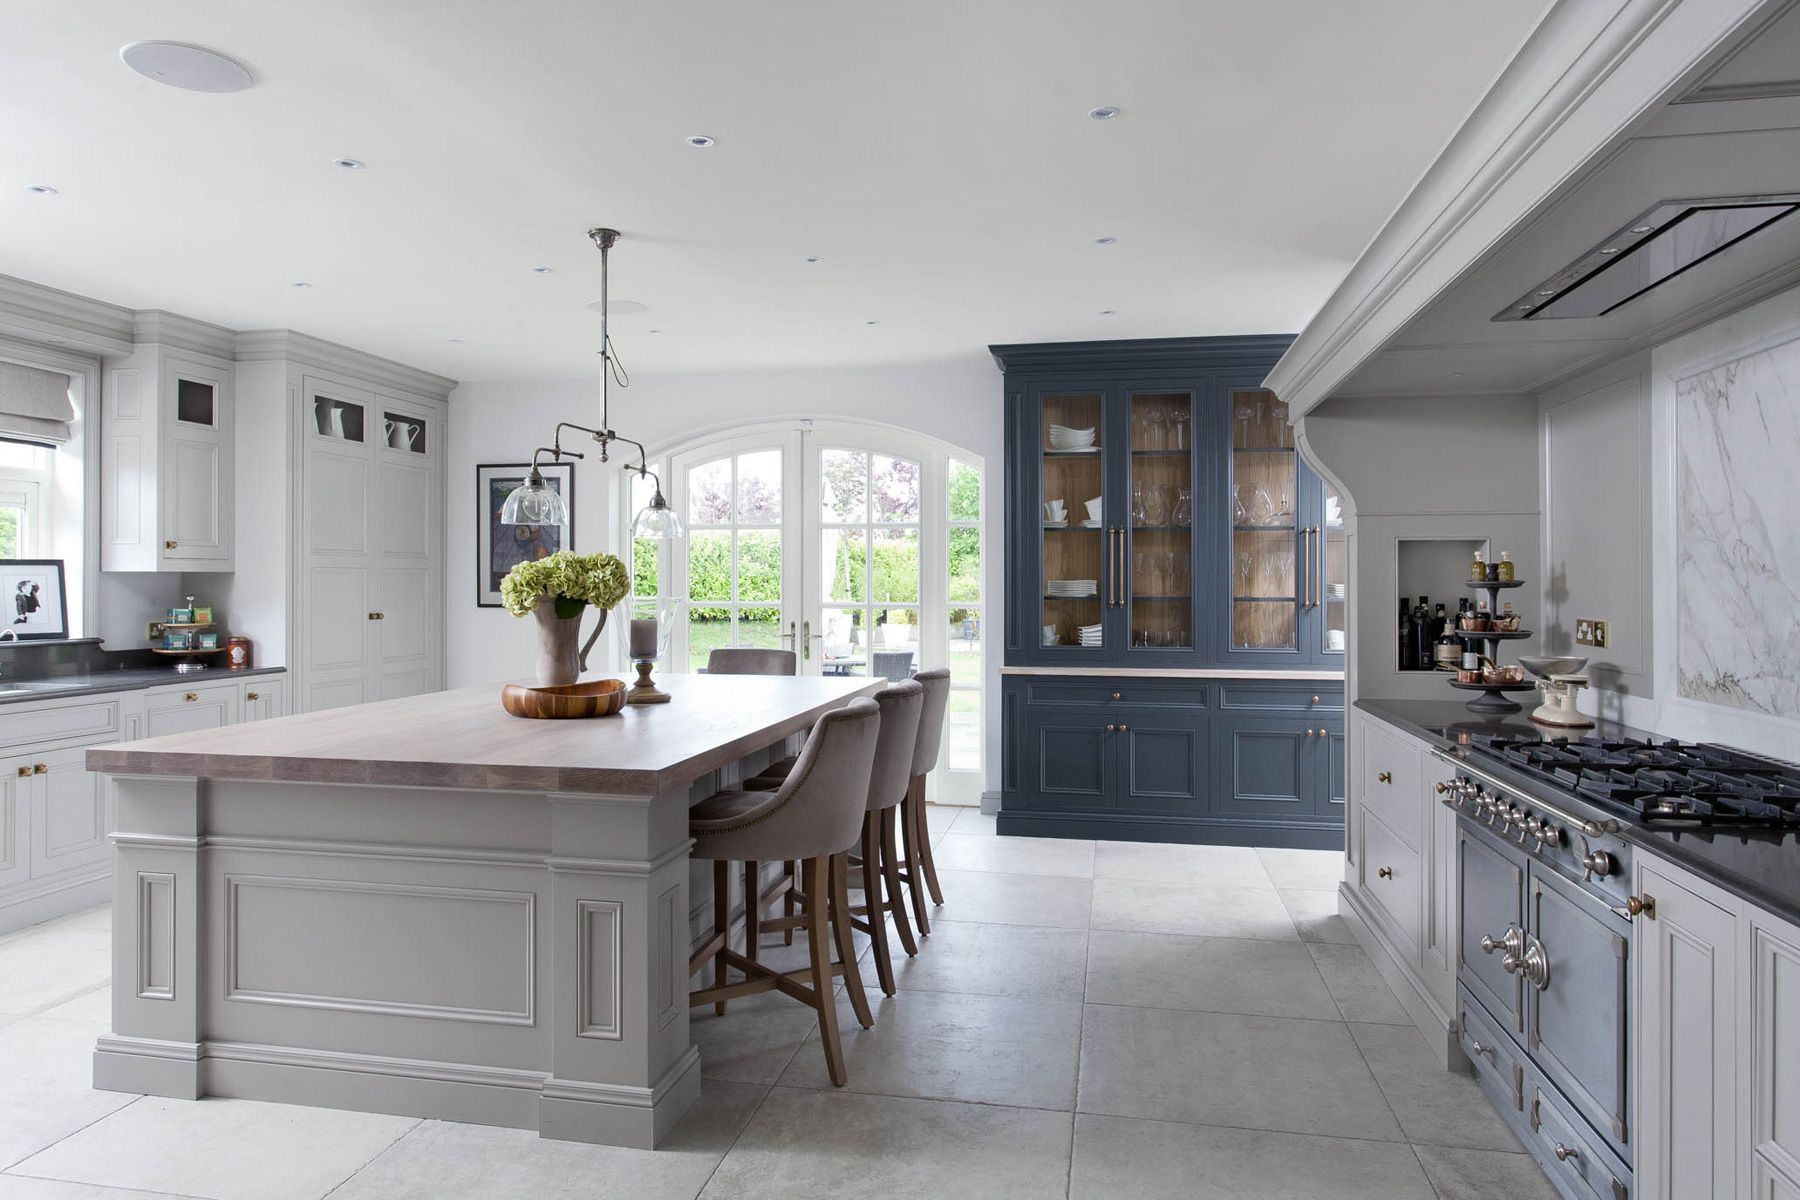 This Bespoke kitchen has a French influenced theme